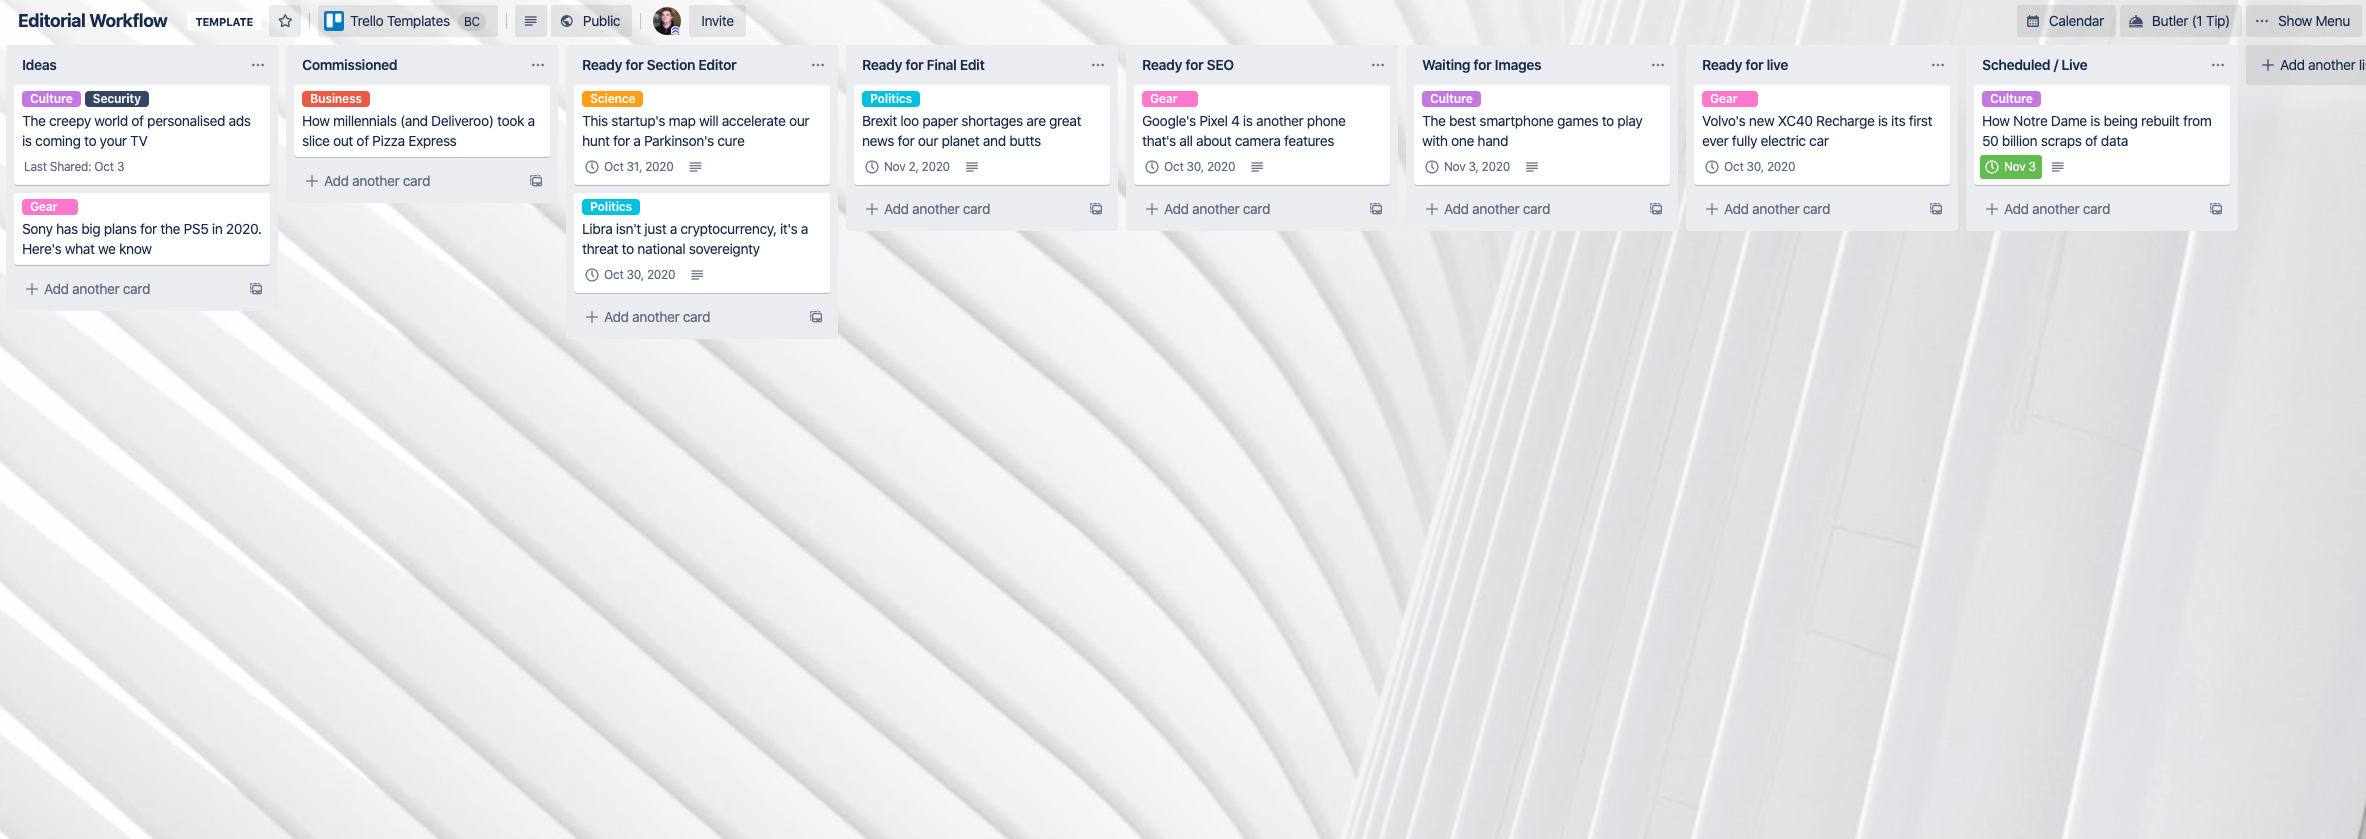 Wired UK Editorial Workflow Trello Template